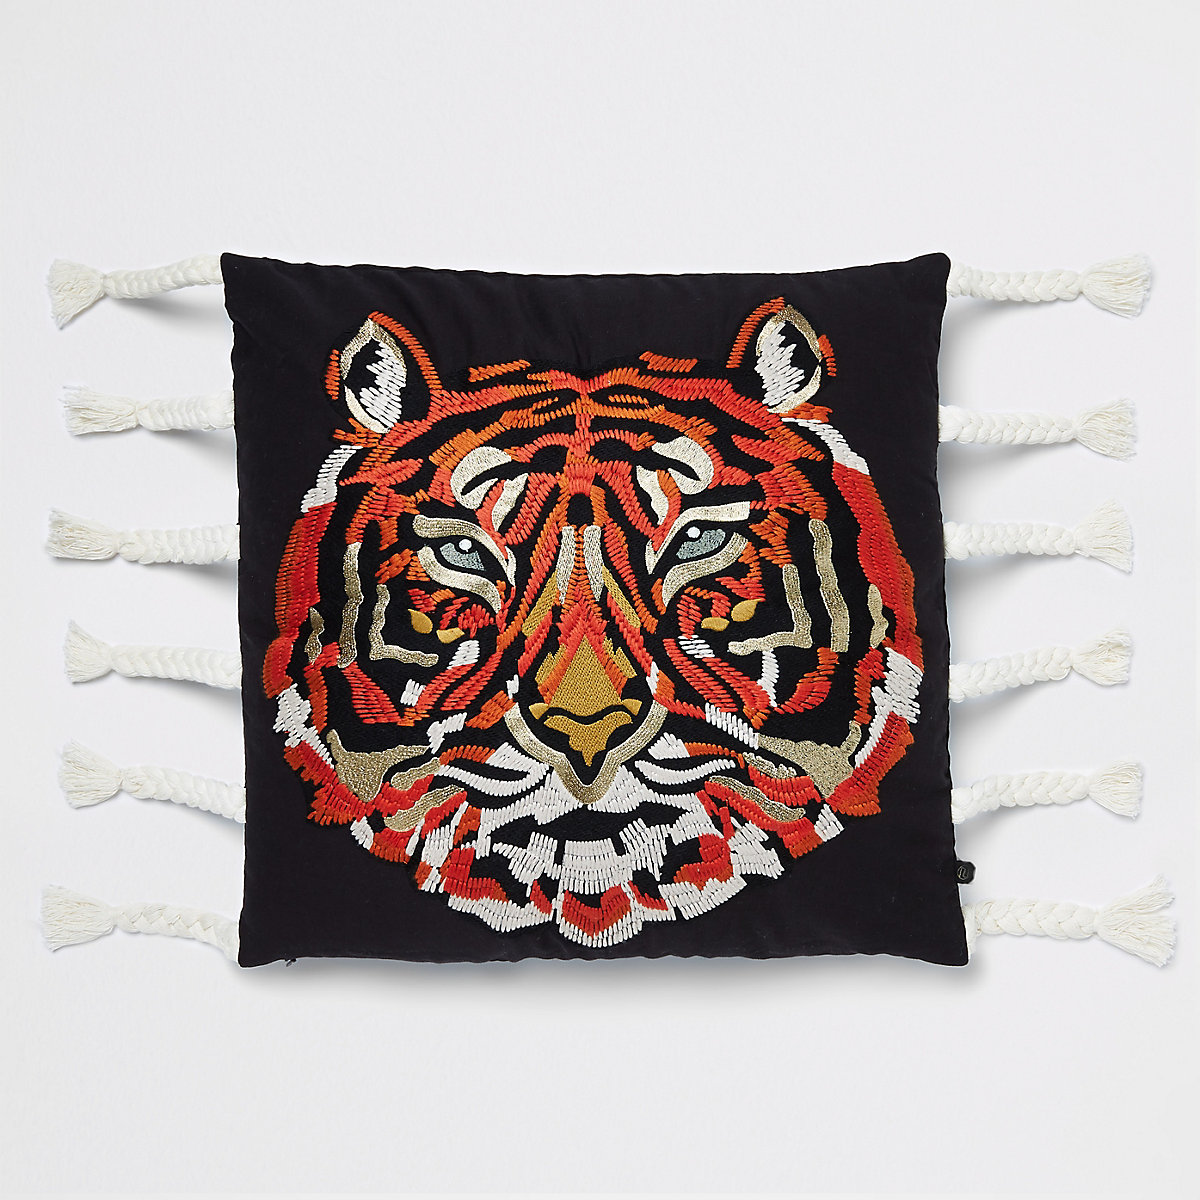 Embroidered tiger cushion with tassels